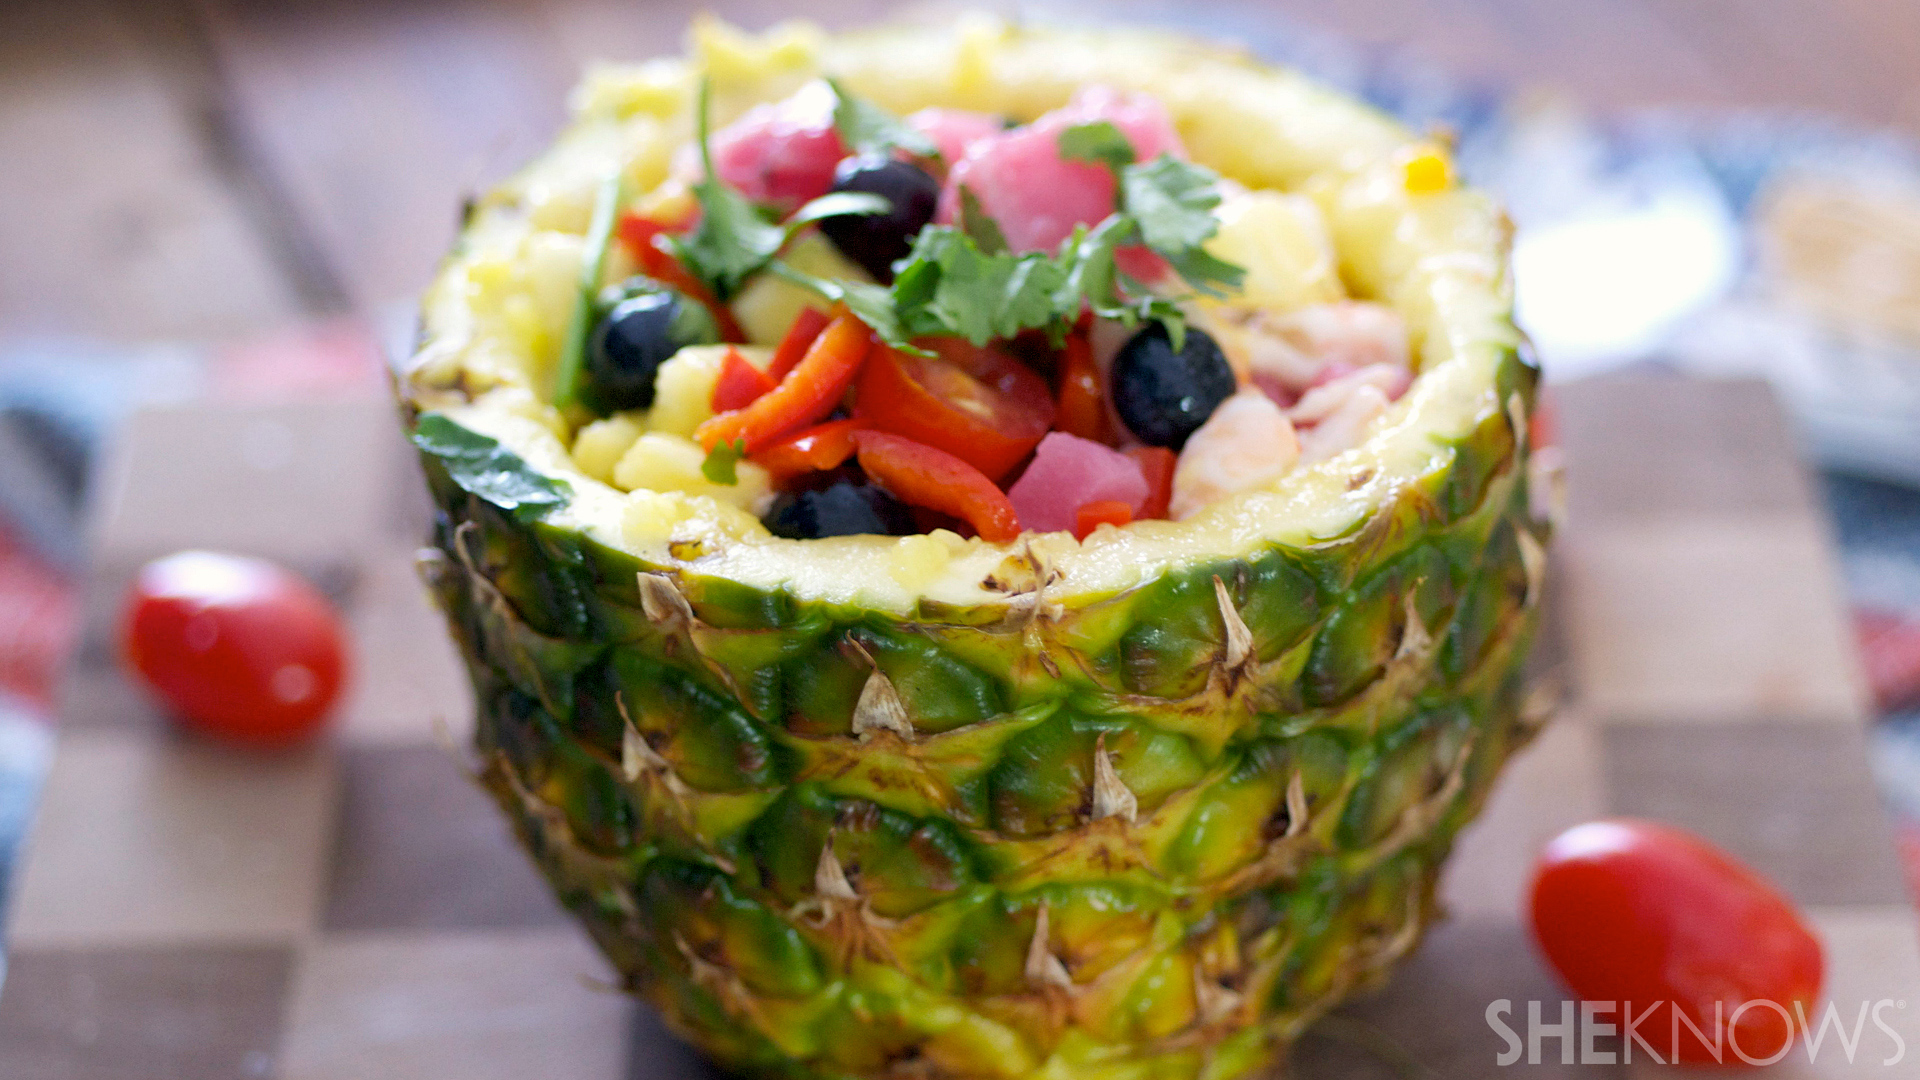 Tangy ceviche salad stuffed in a pineapple